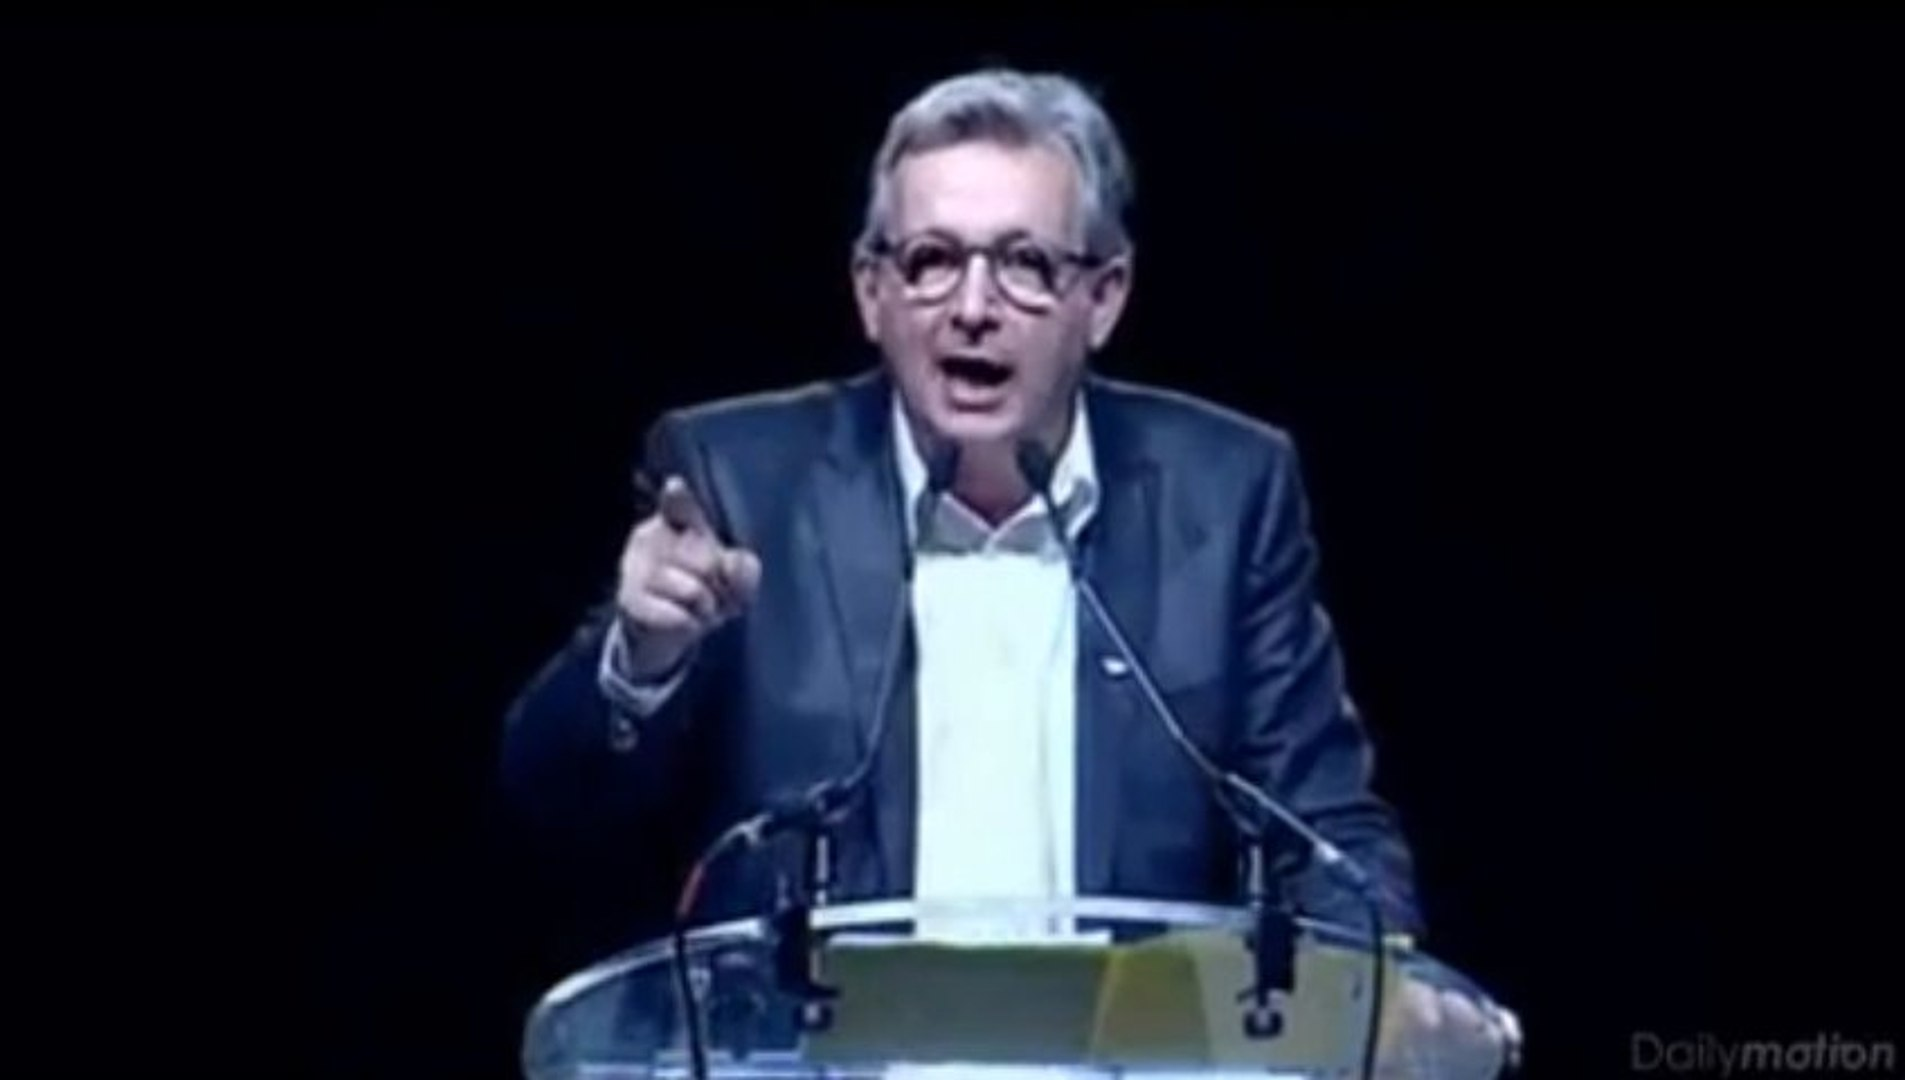 Meeting Front de gauche/PGE à Martigues  - Intervention de Pierre Laurent